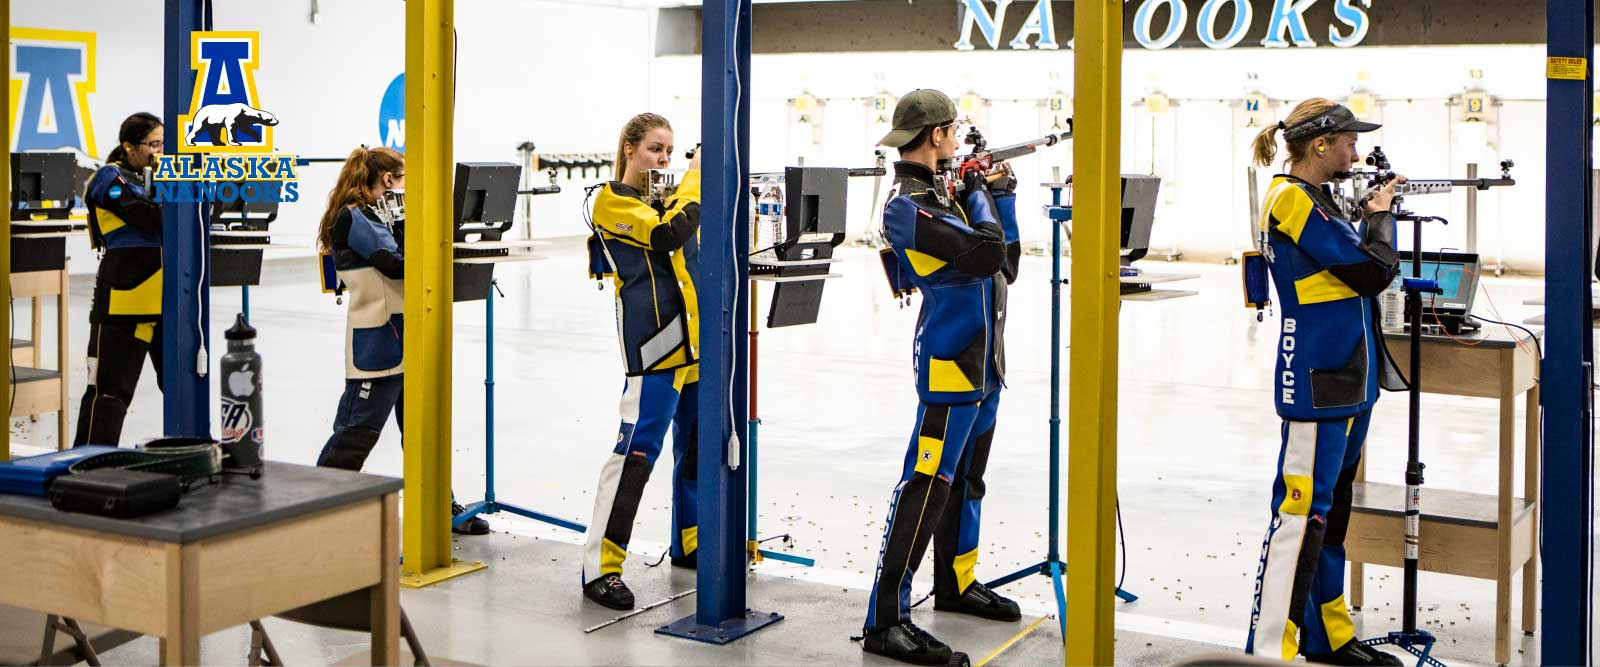 The Alaska Nanooks rifle team practicing at the range.